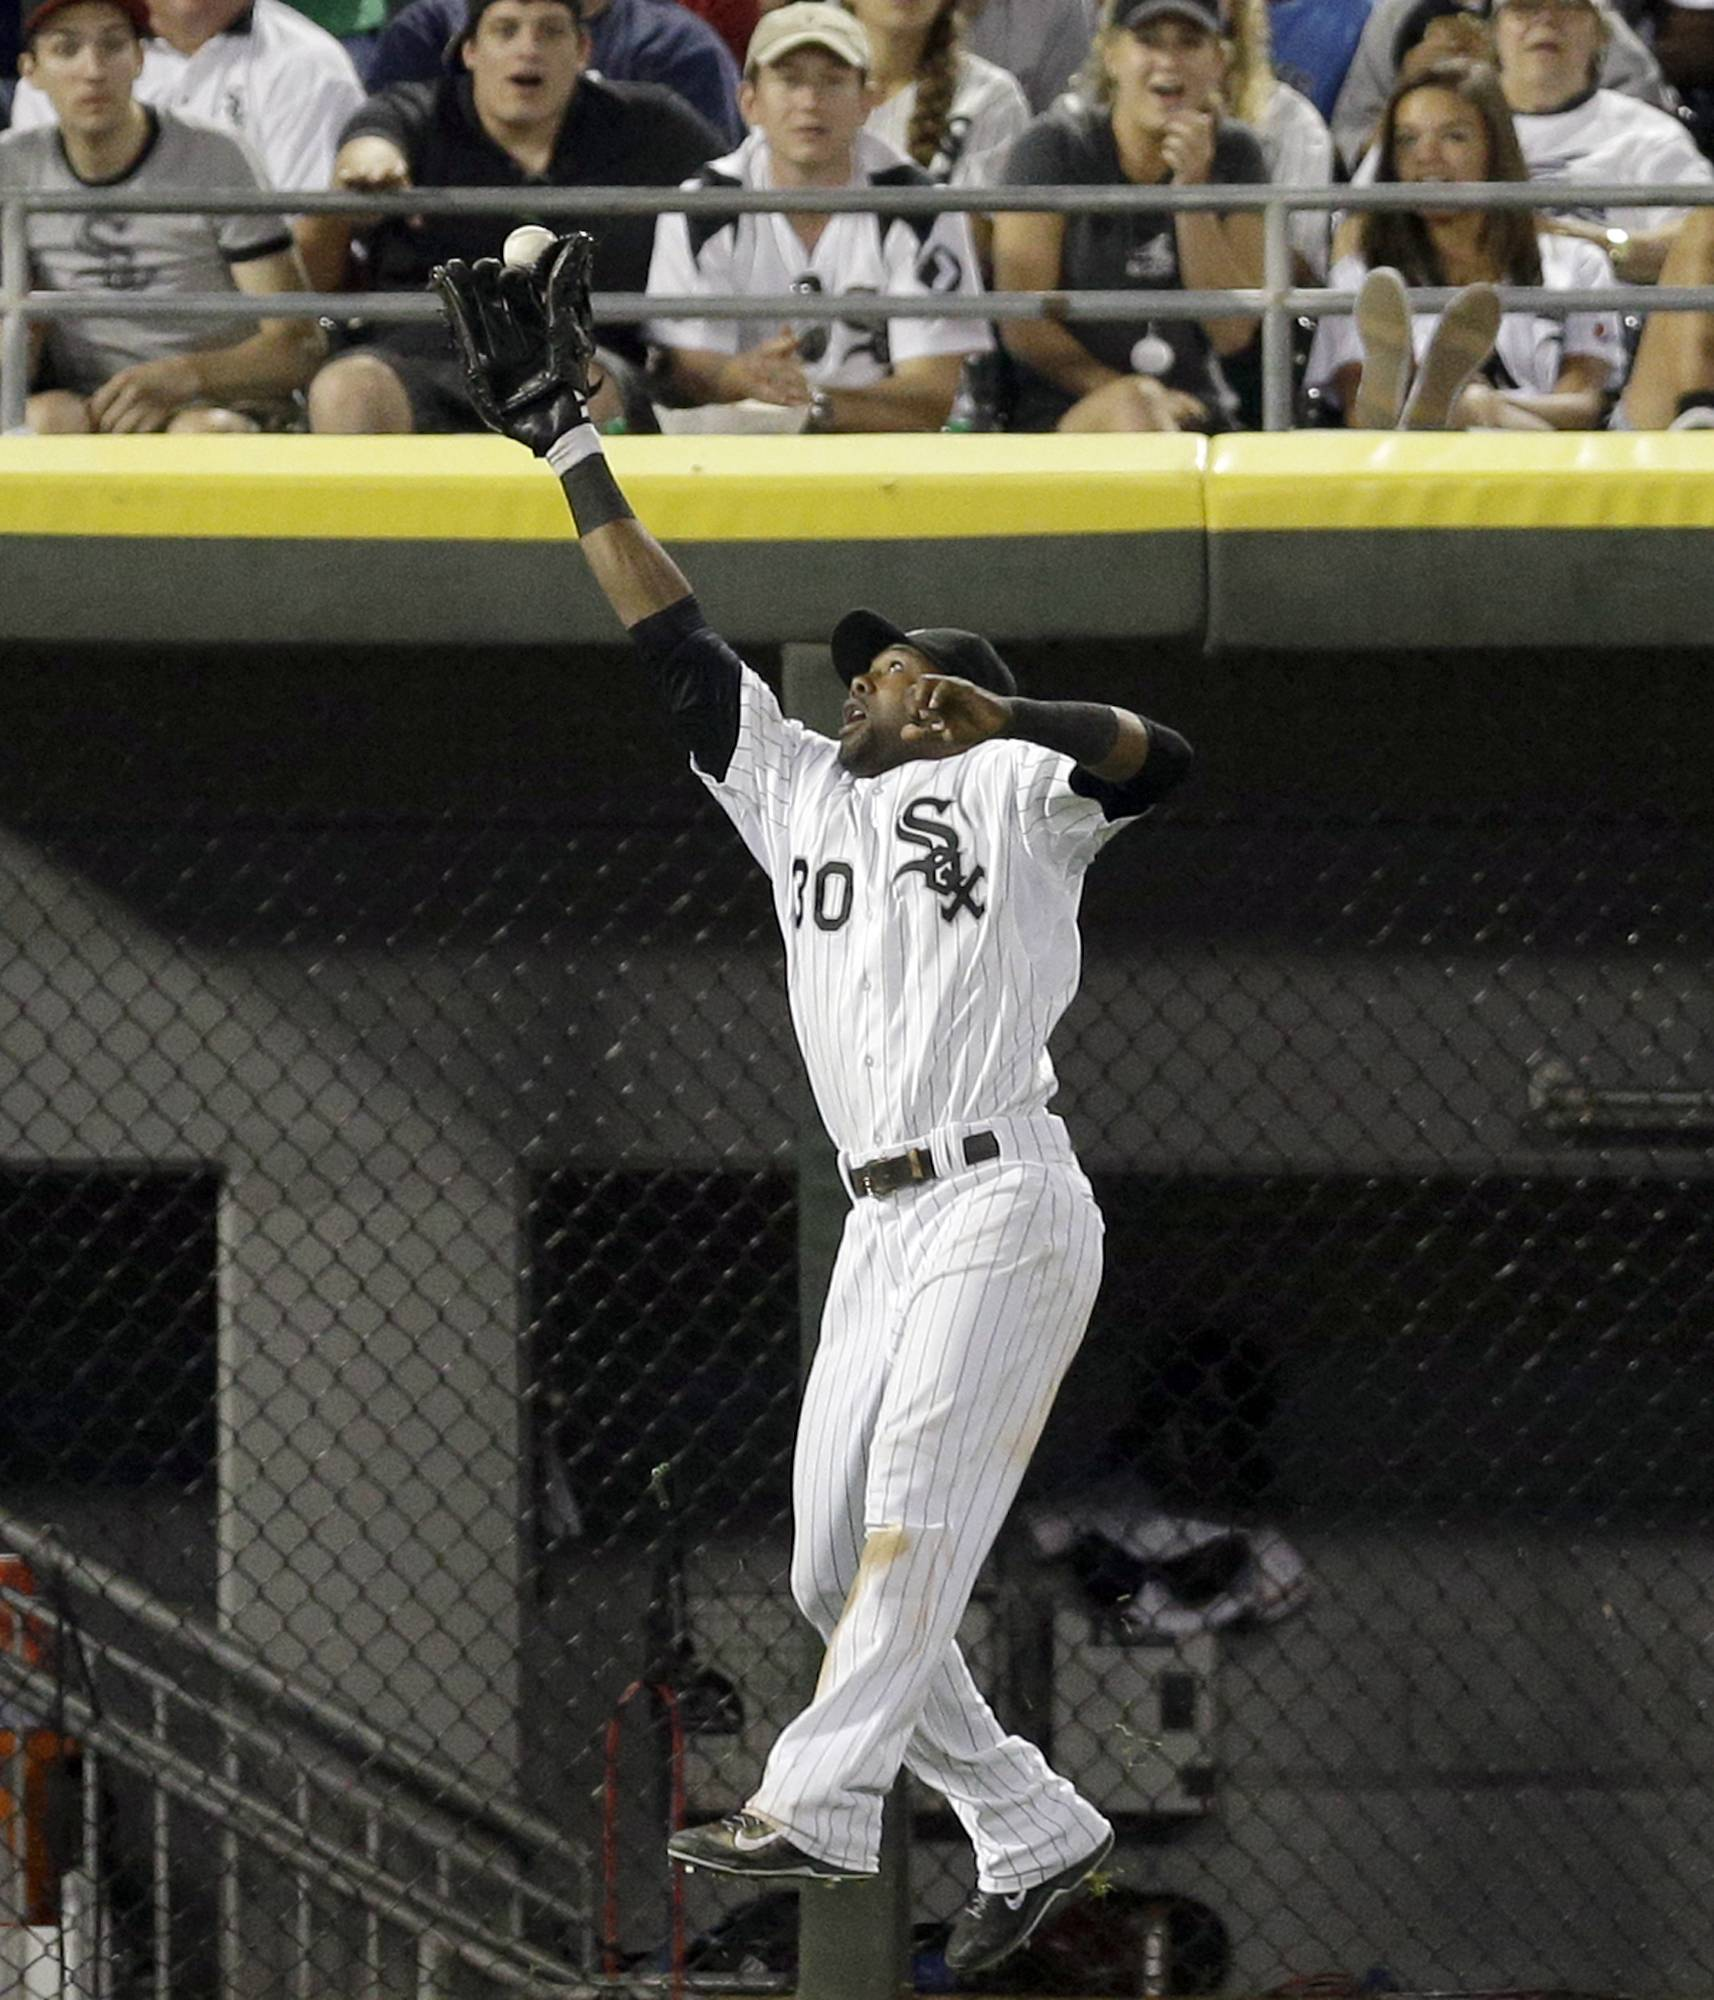 Chicago White Sox left fielder Alejandro De Aza can't make the play on a double hit by Minnesota Twins' Oswaldo Arcia during the eighth inning of a game Saturday in Chicago.